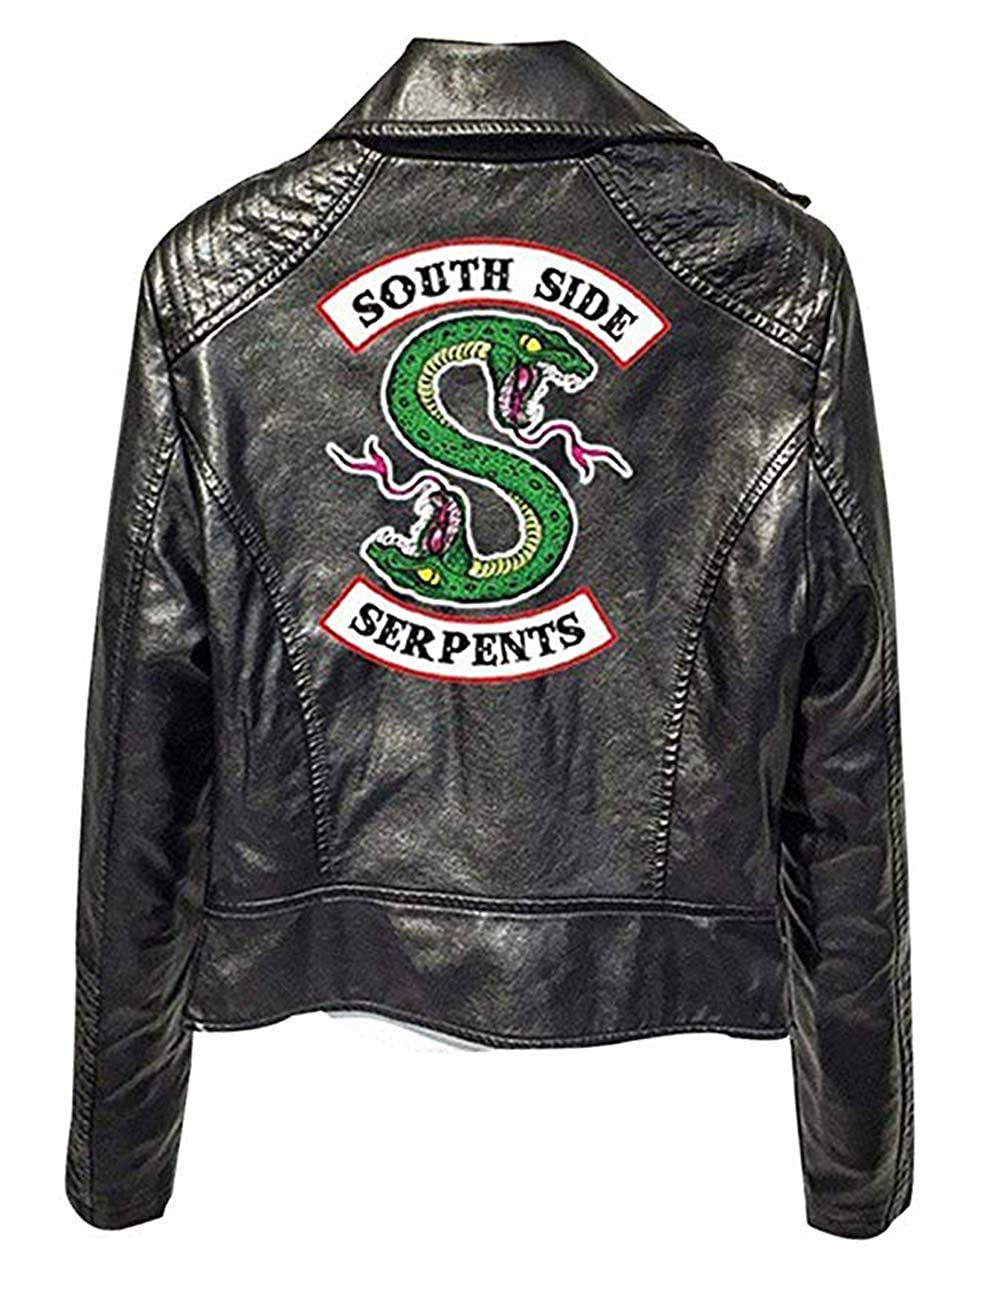 FIYEAGLE Giacca Serpents Riverdale Giacca Donna Pelle Invernali Riverdale Southside Serpents Faux Leather Jacket Elegante Black Cappotto